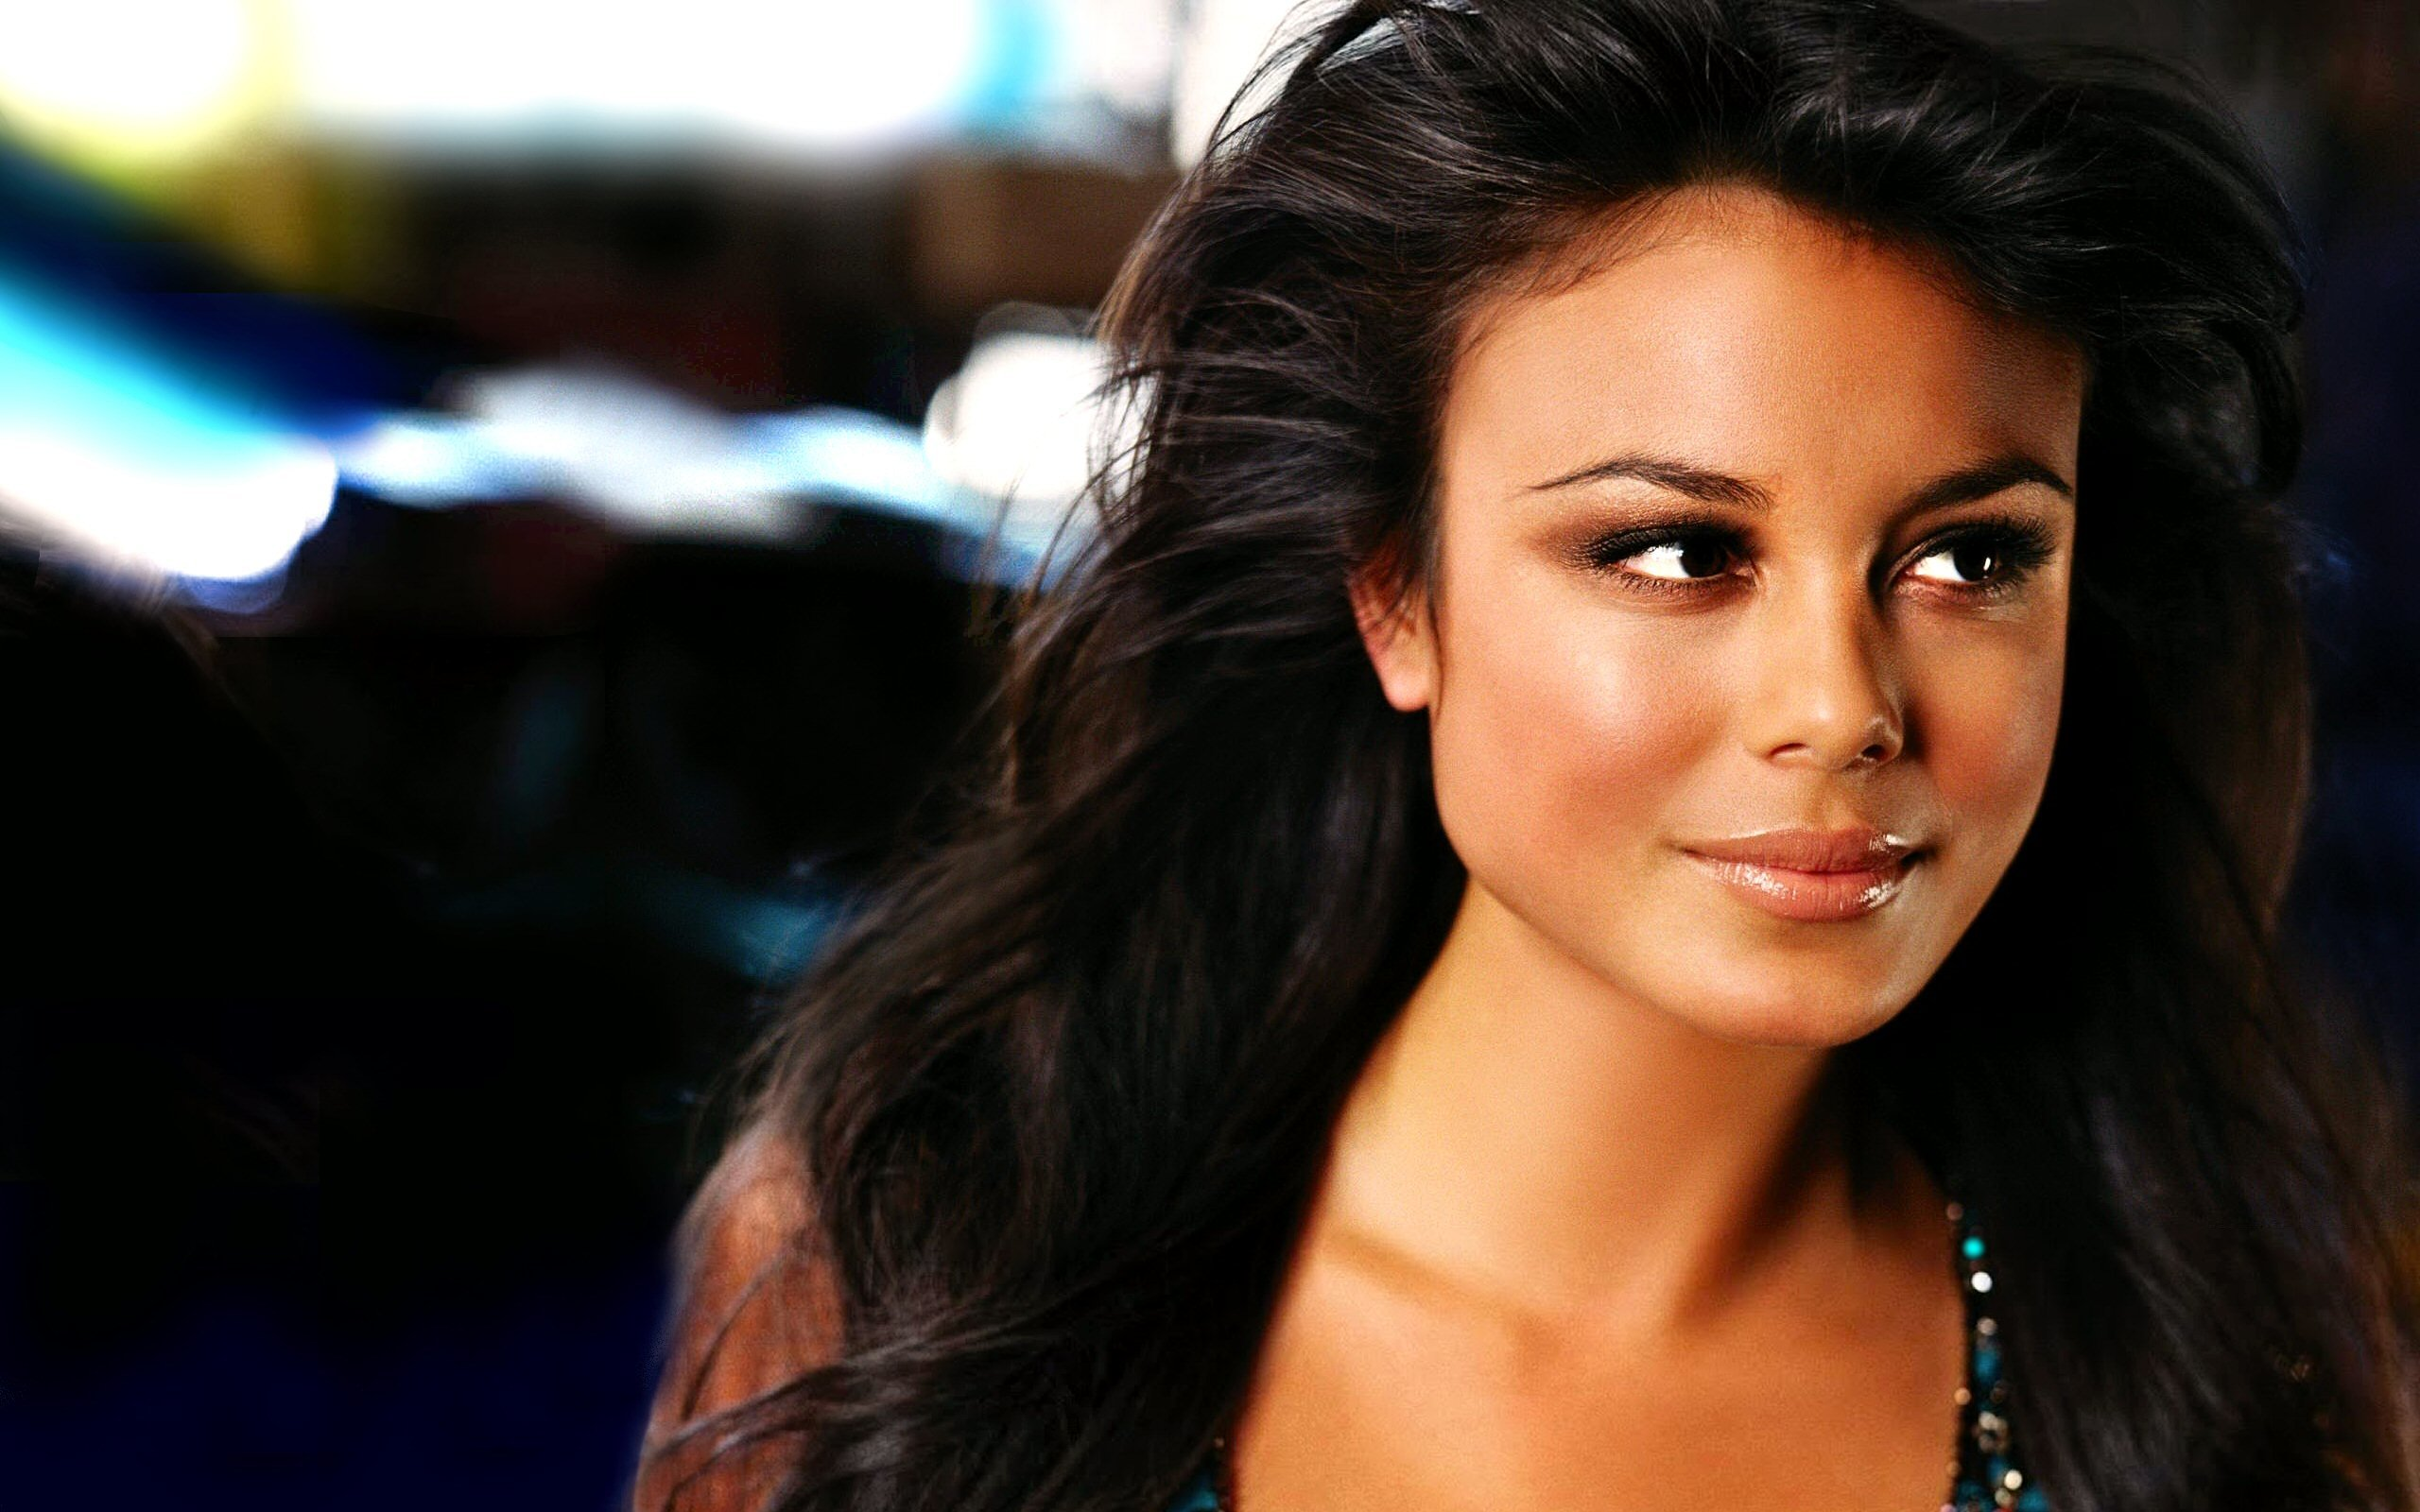 Download hd 2560x1600 Nathalie Kelley computer background ID:450592 for free